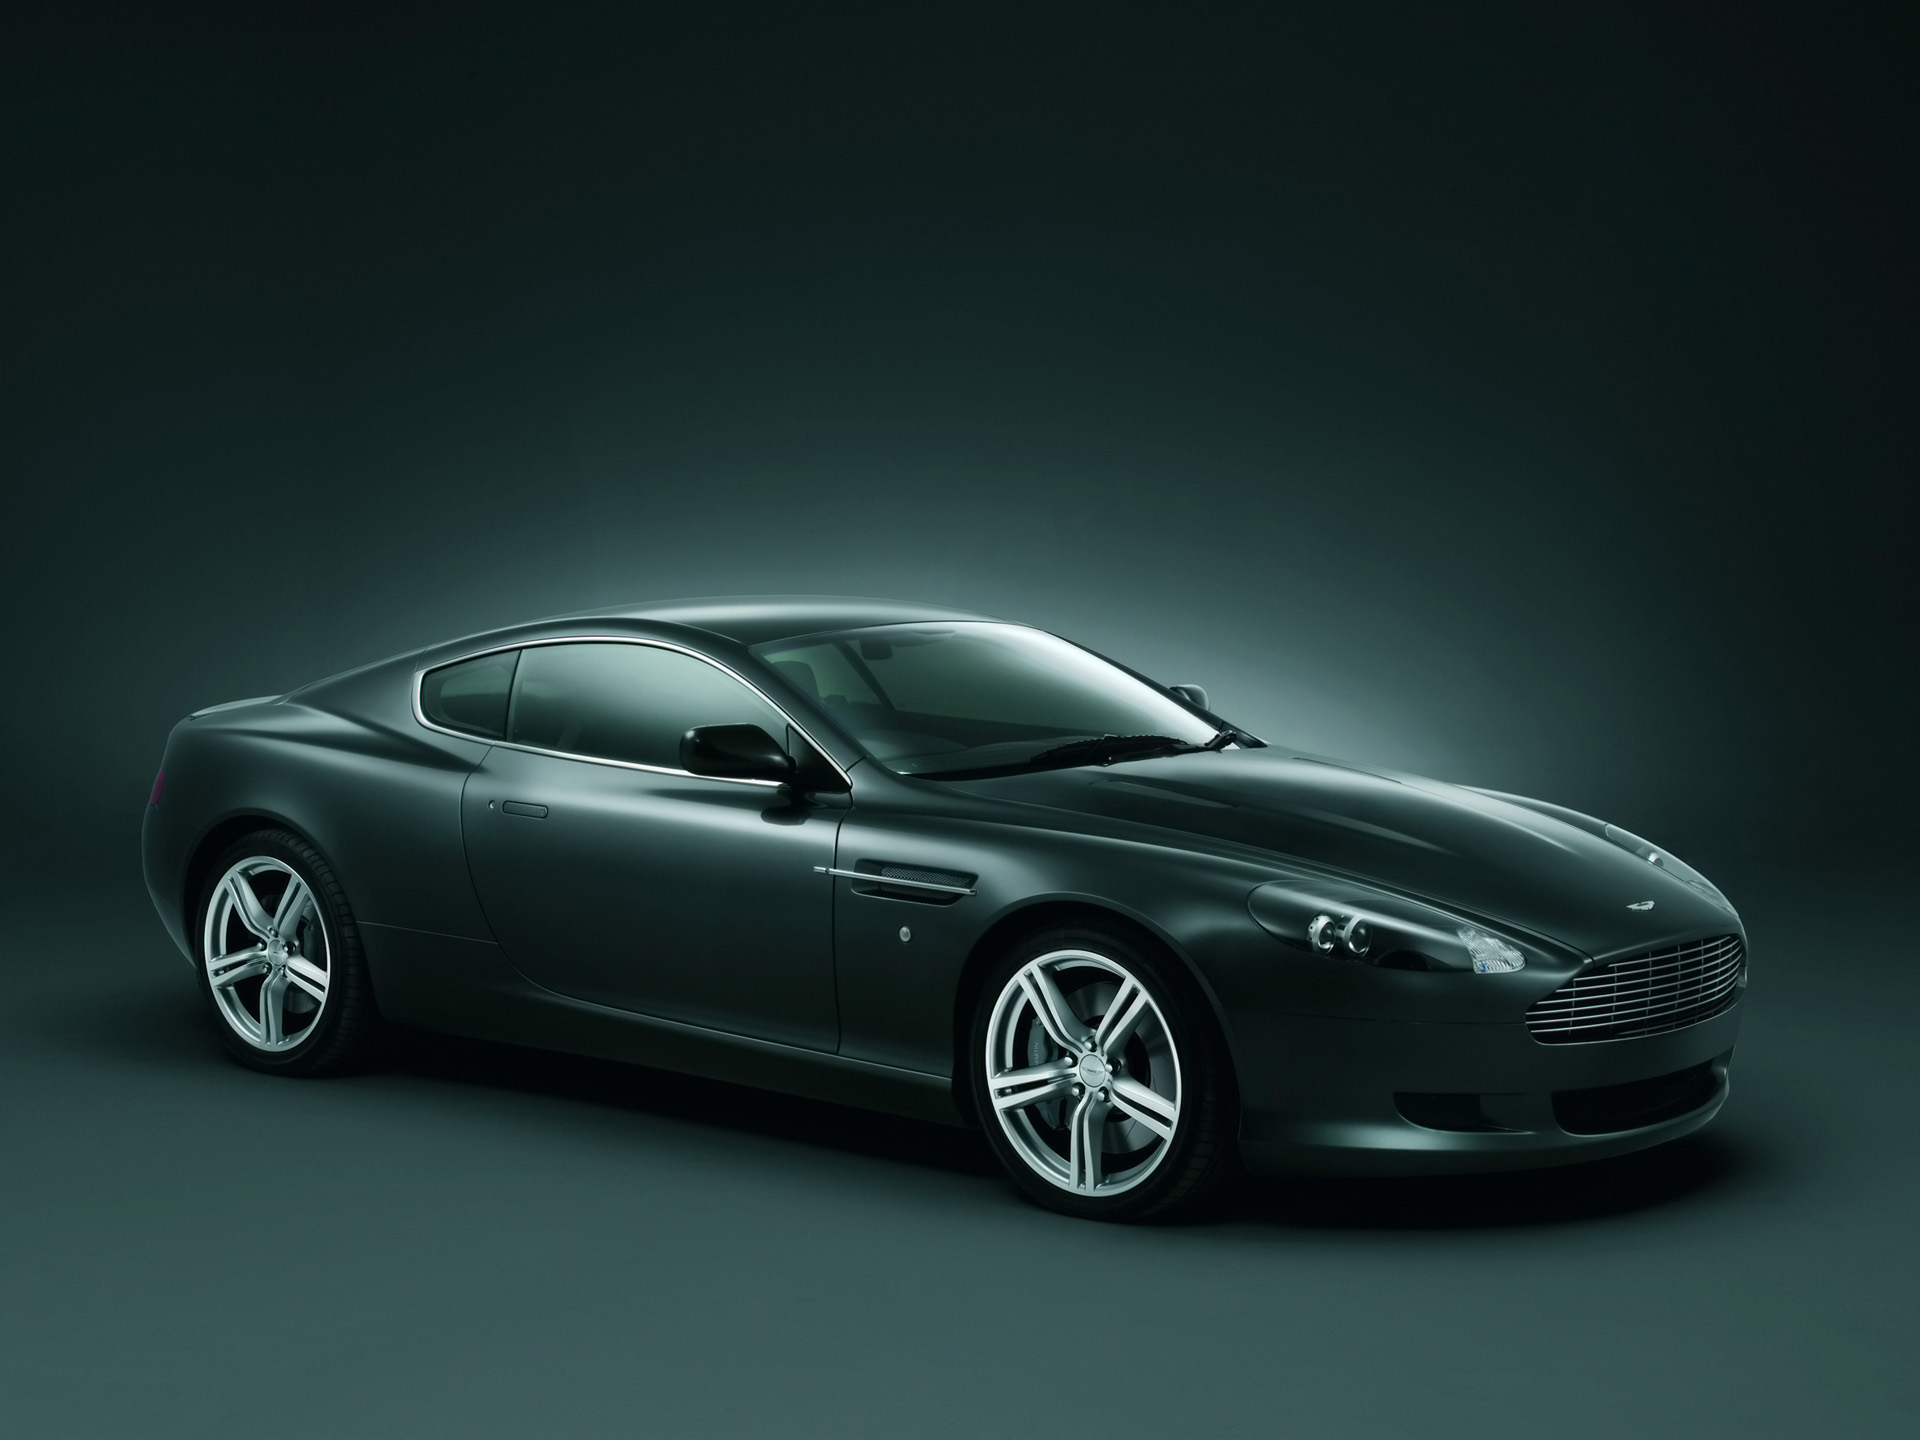 aston martin db9 sport pack picture 34470 aston martin photo gallery. Black Bedroom Furniture Sets. Home Design Ideas